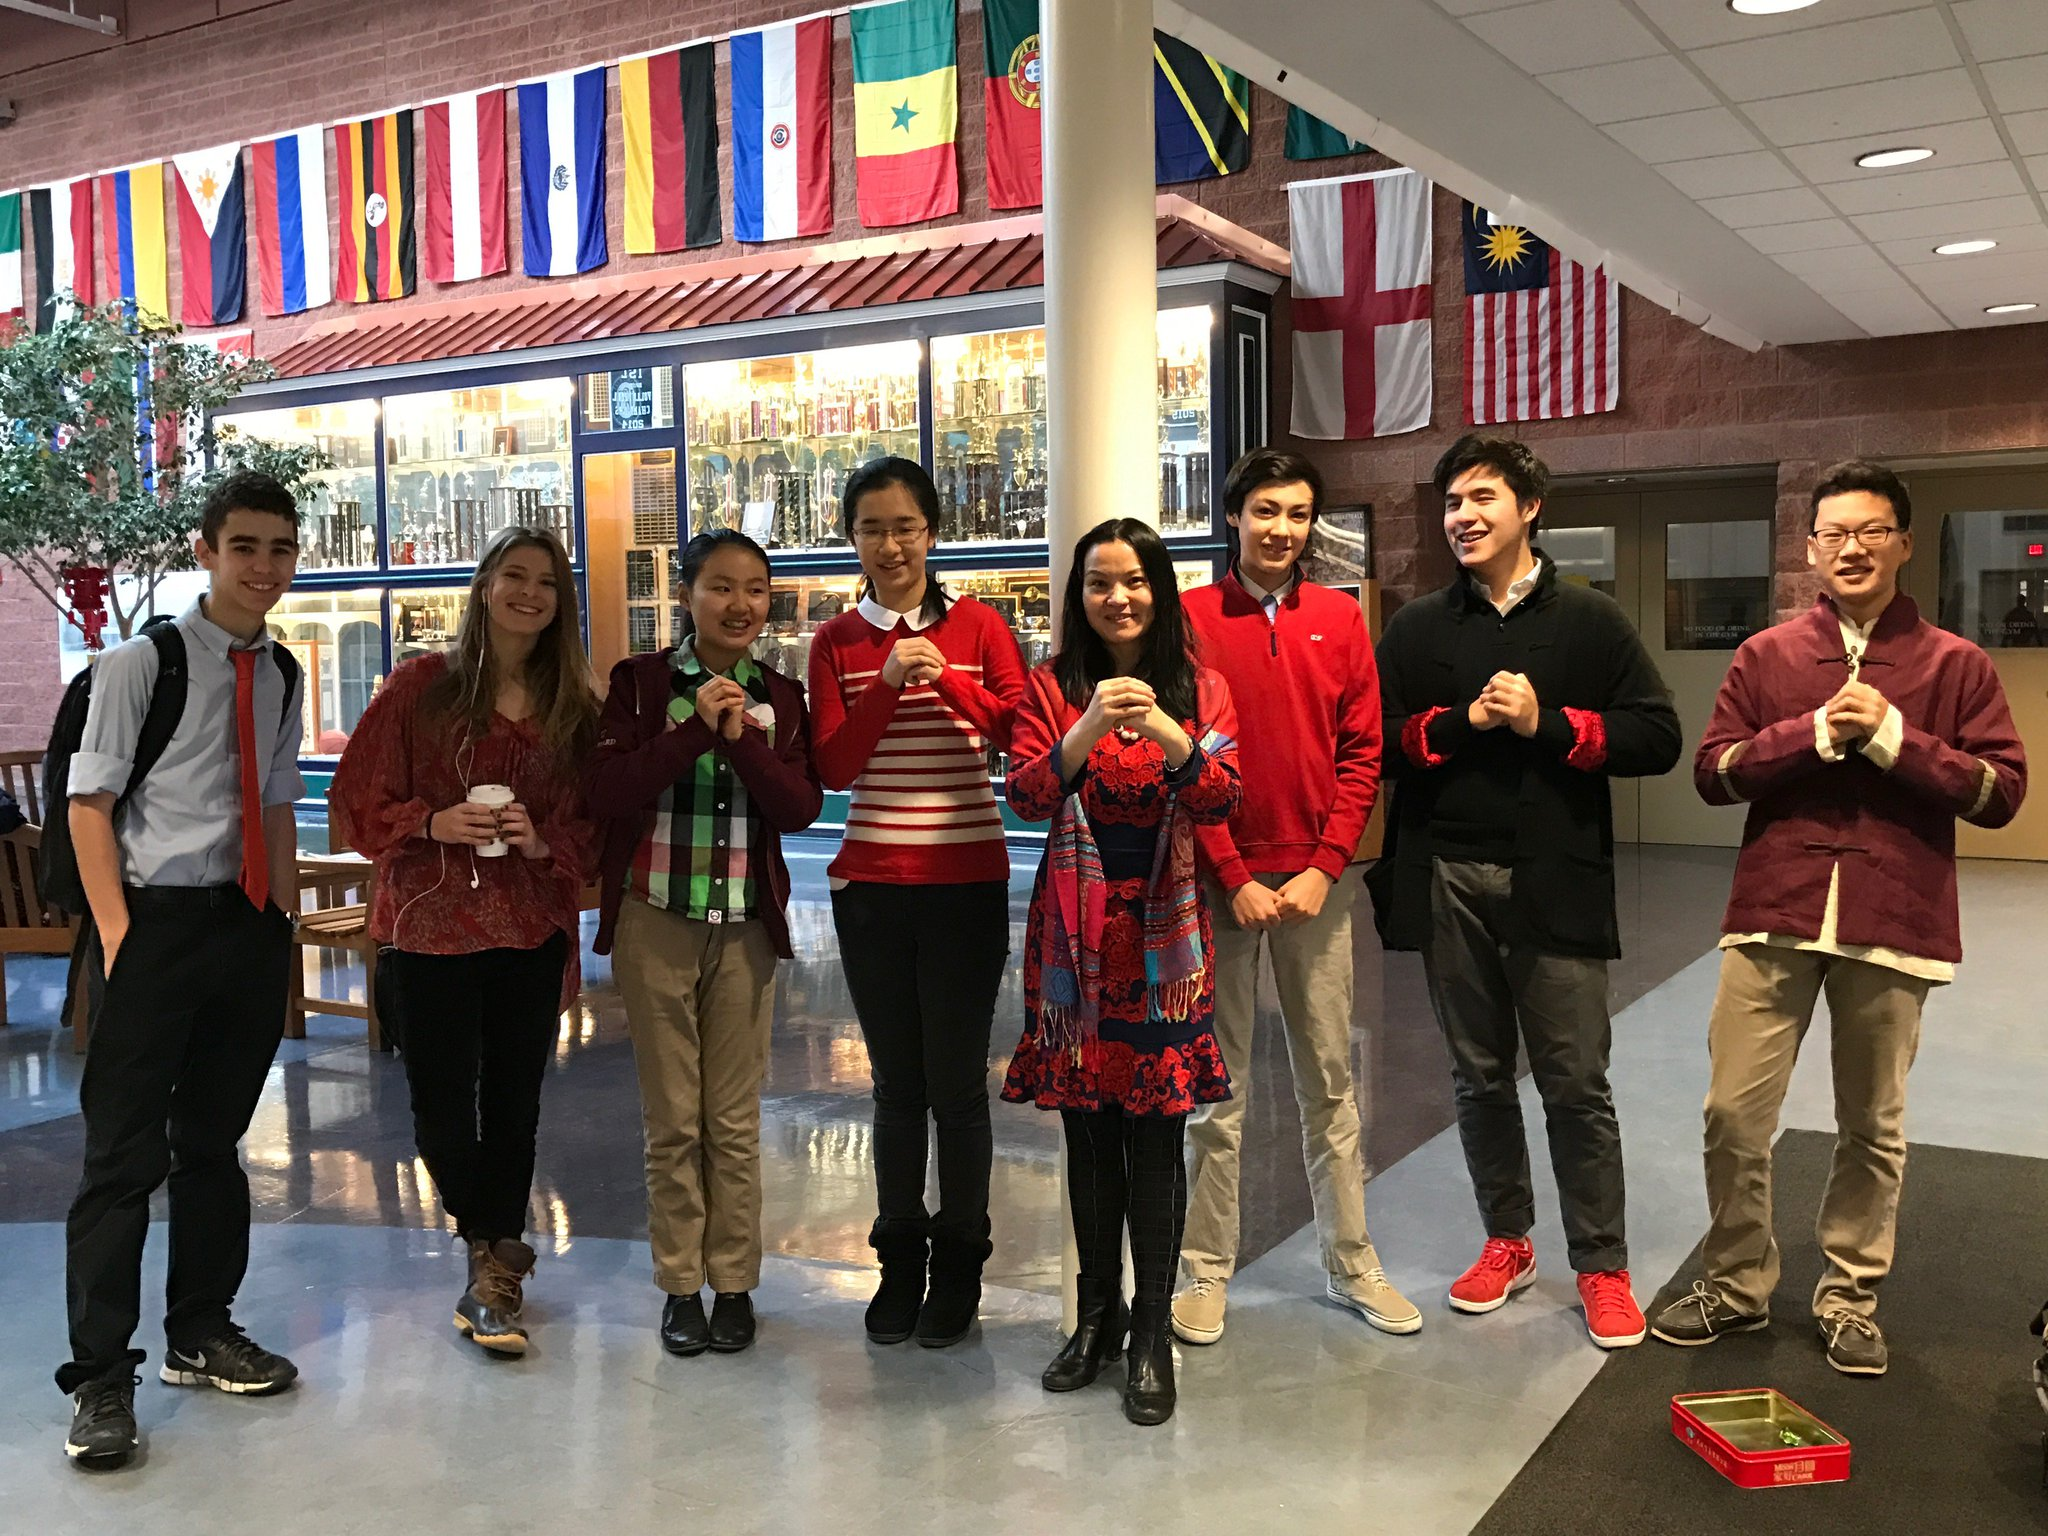 Chinese students gather to wish everyone Happy New Year. #myflinthill https://t.co/YS32vUOMXe